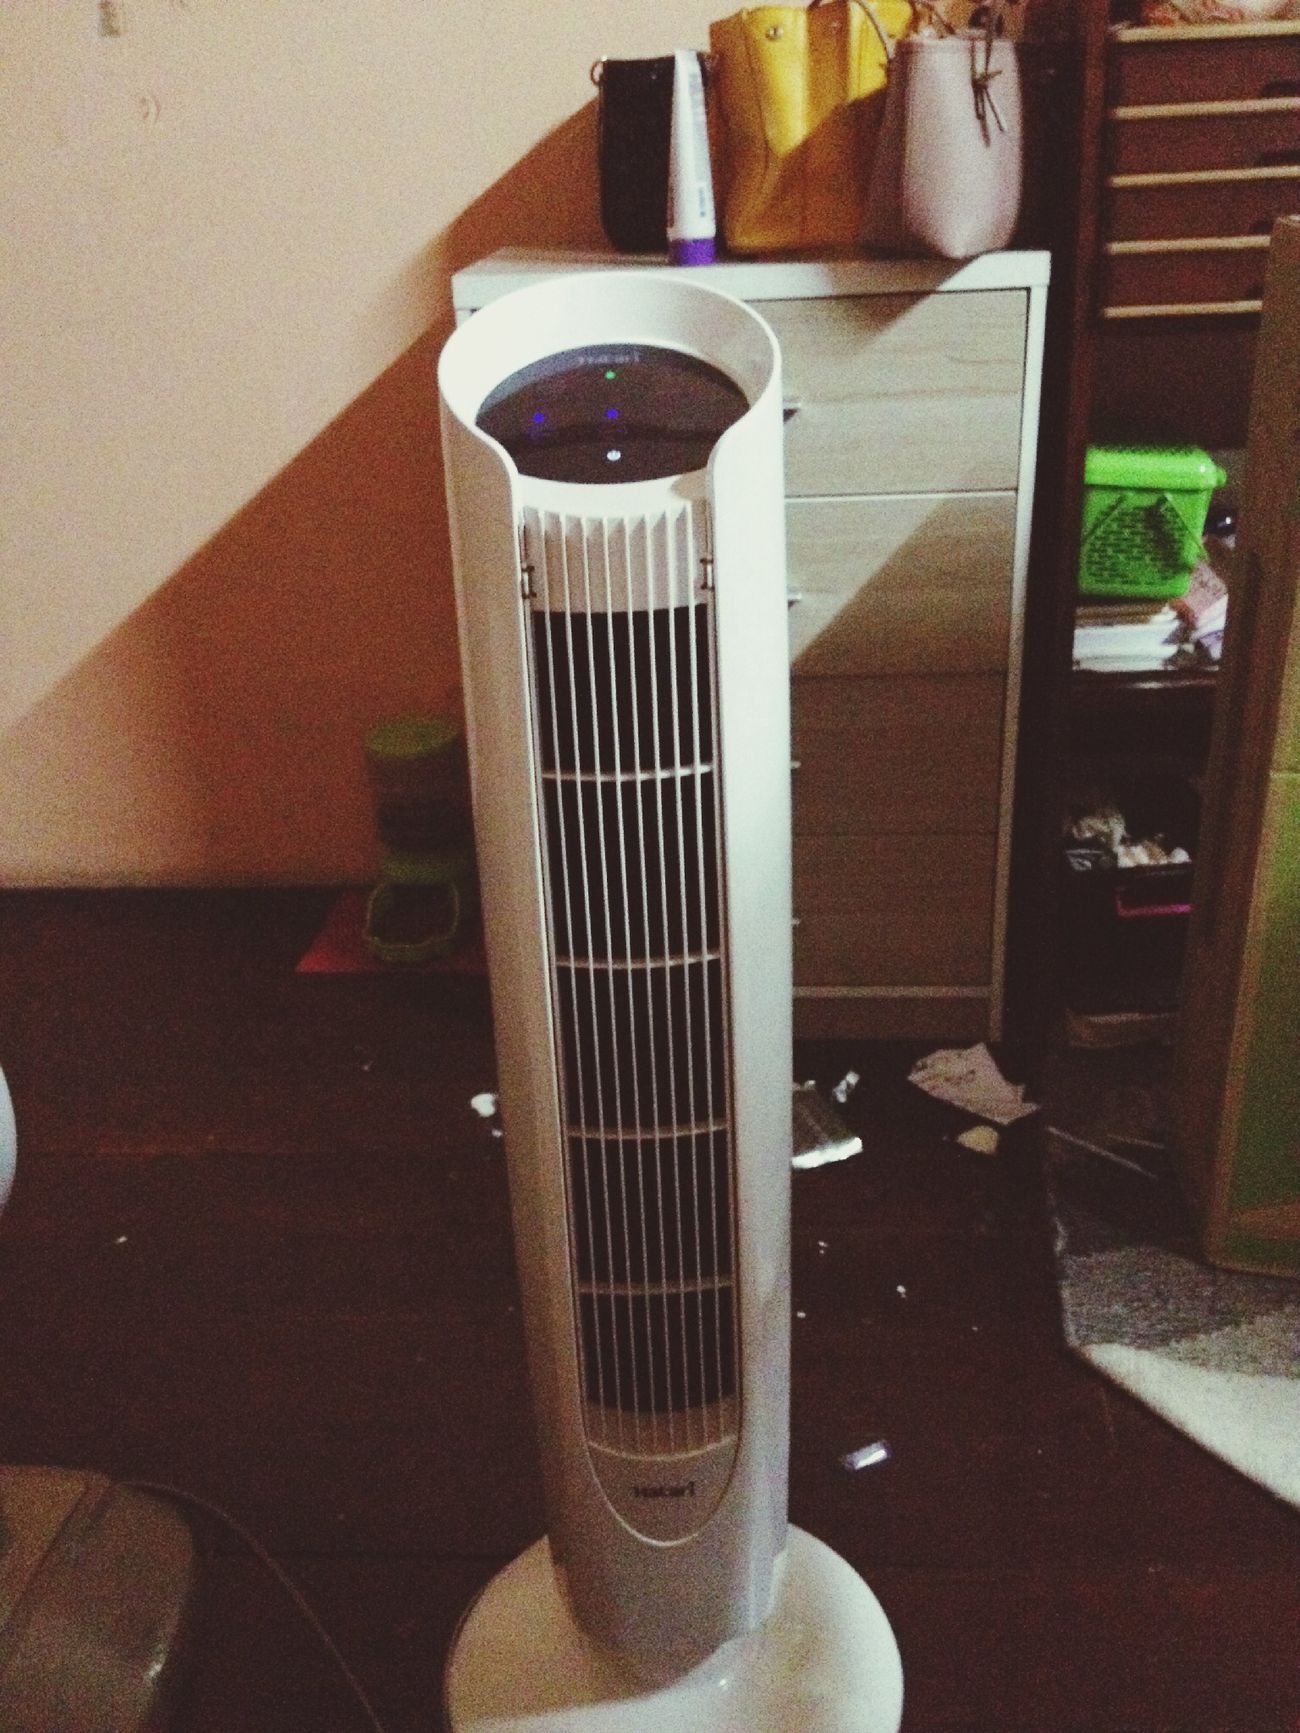 I just purchased TowerFan invented by Harati.